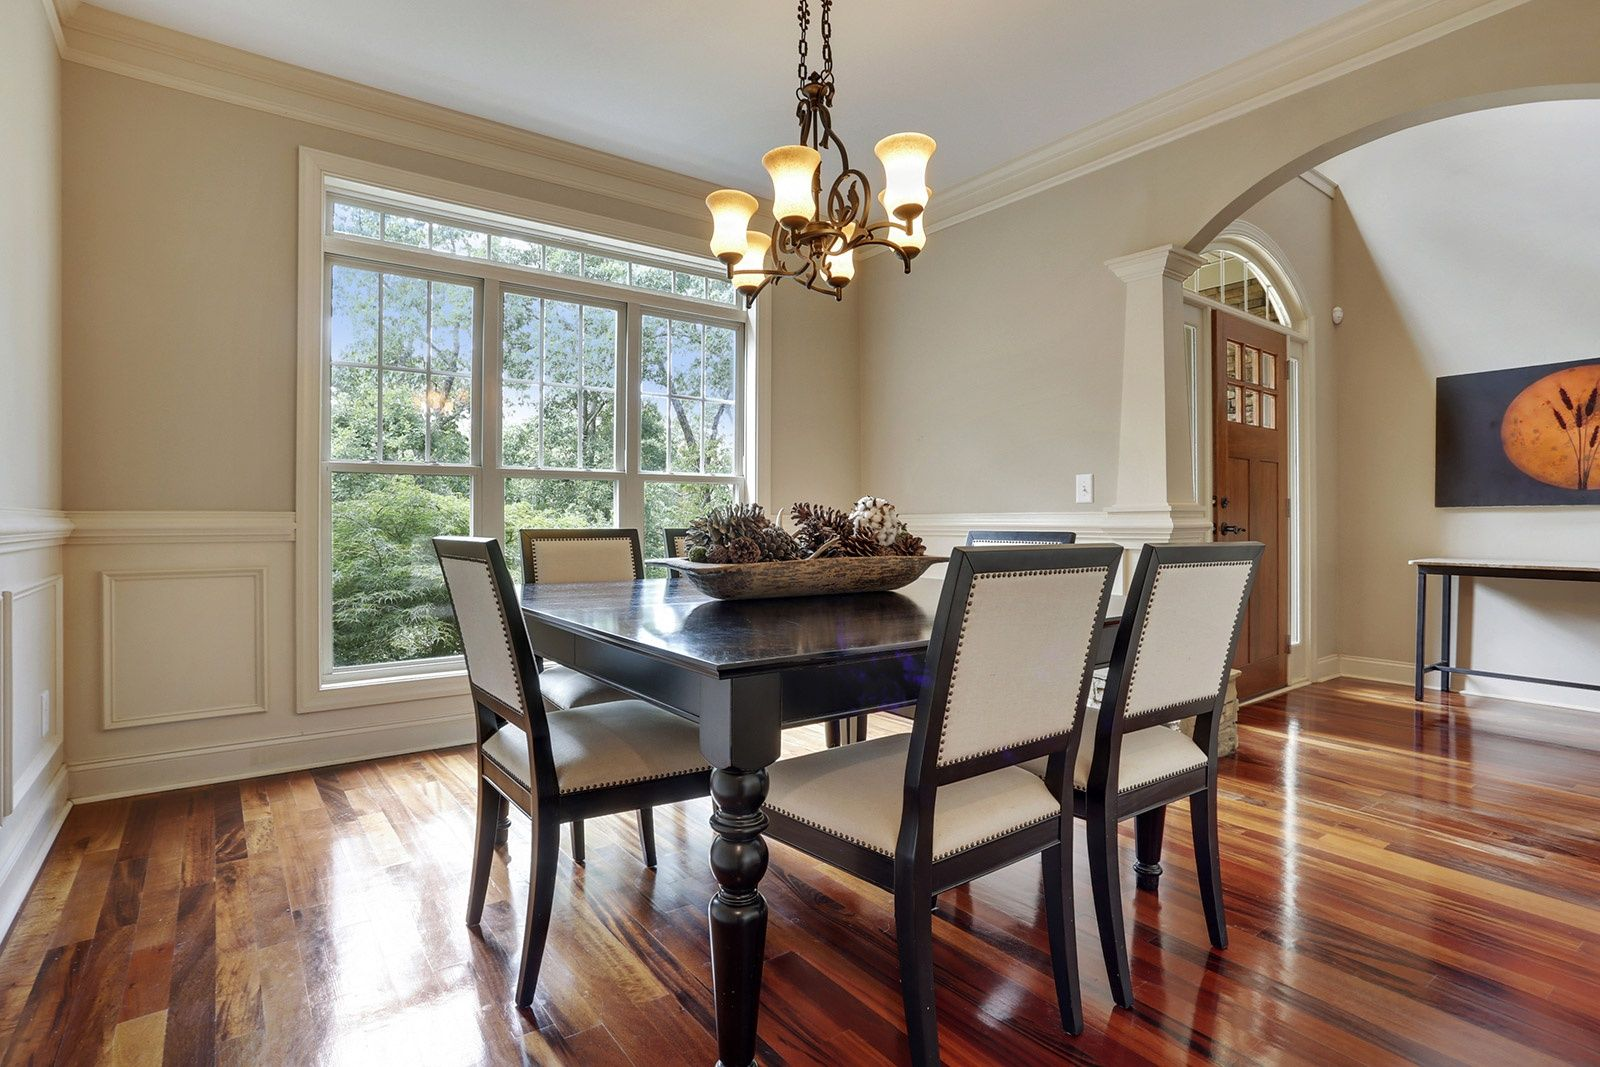 How To Make Your House Look Traditional | Traditional, Neutral ...